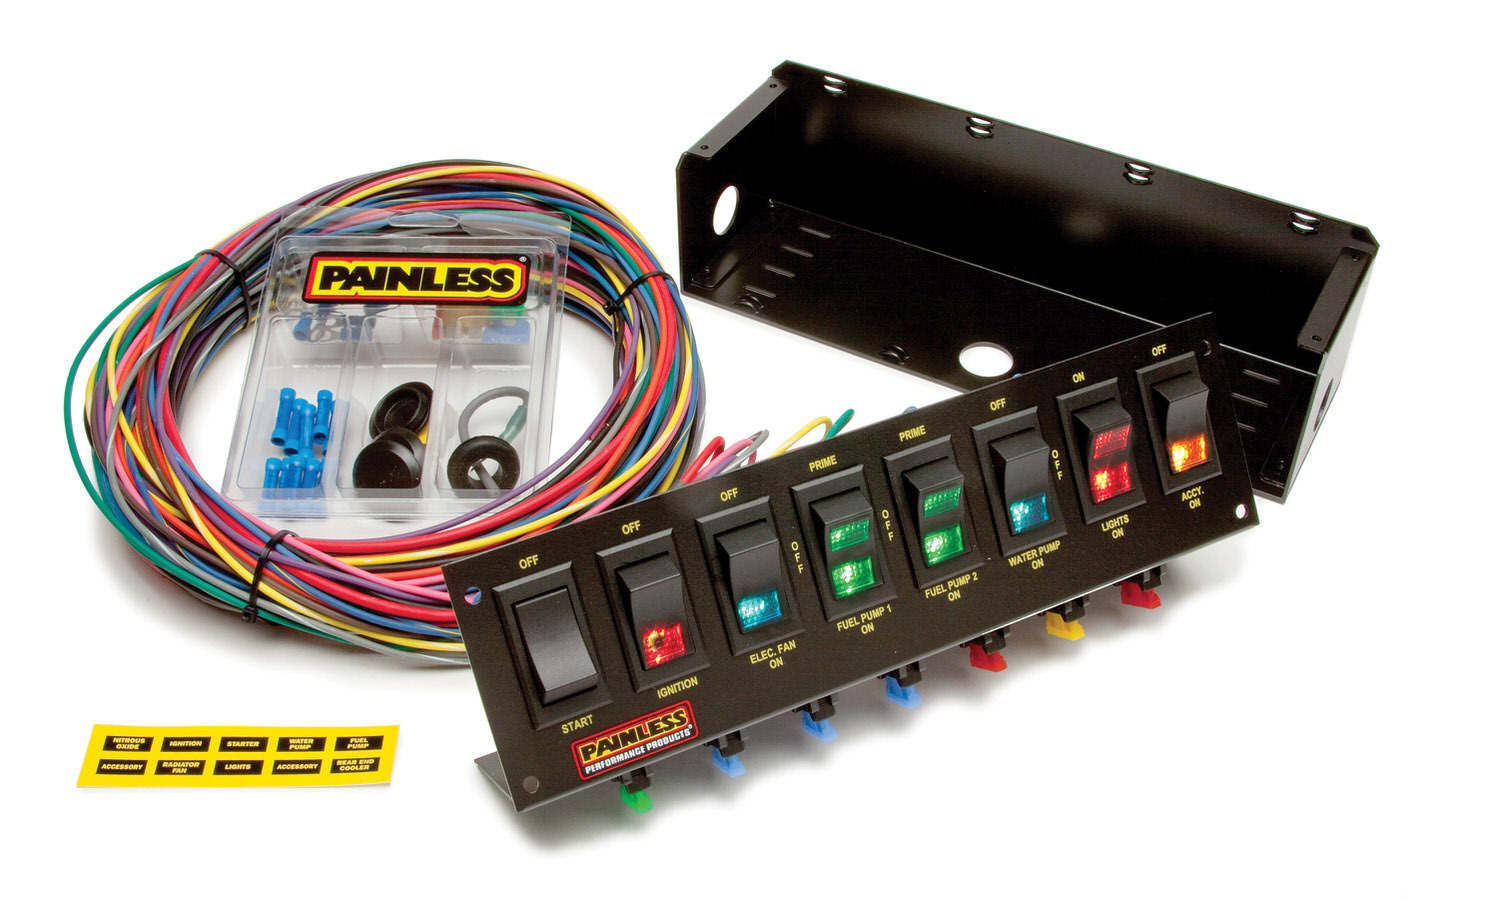 Painless Wiring 8 Switch Panel W/Harness